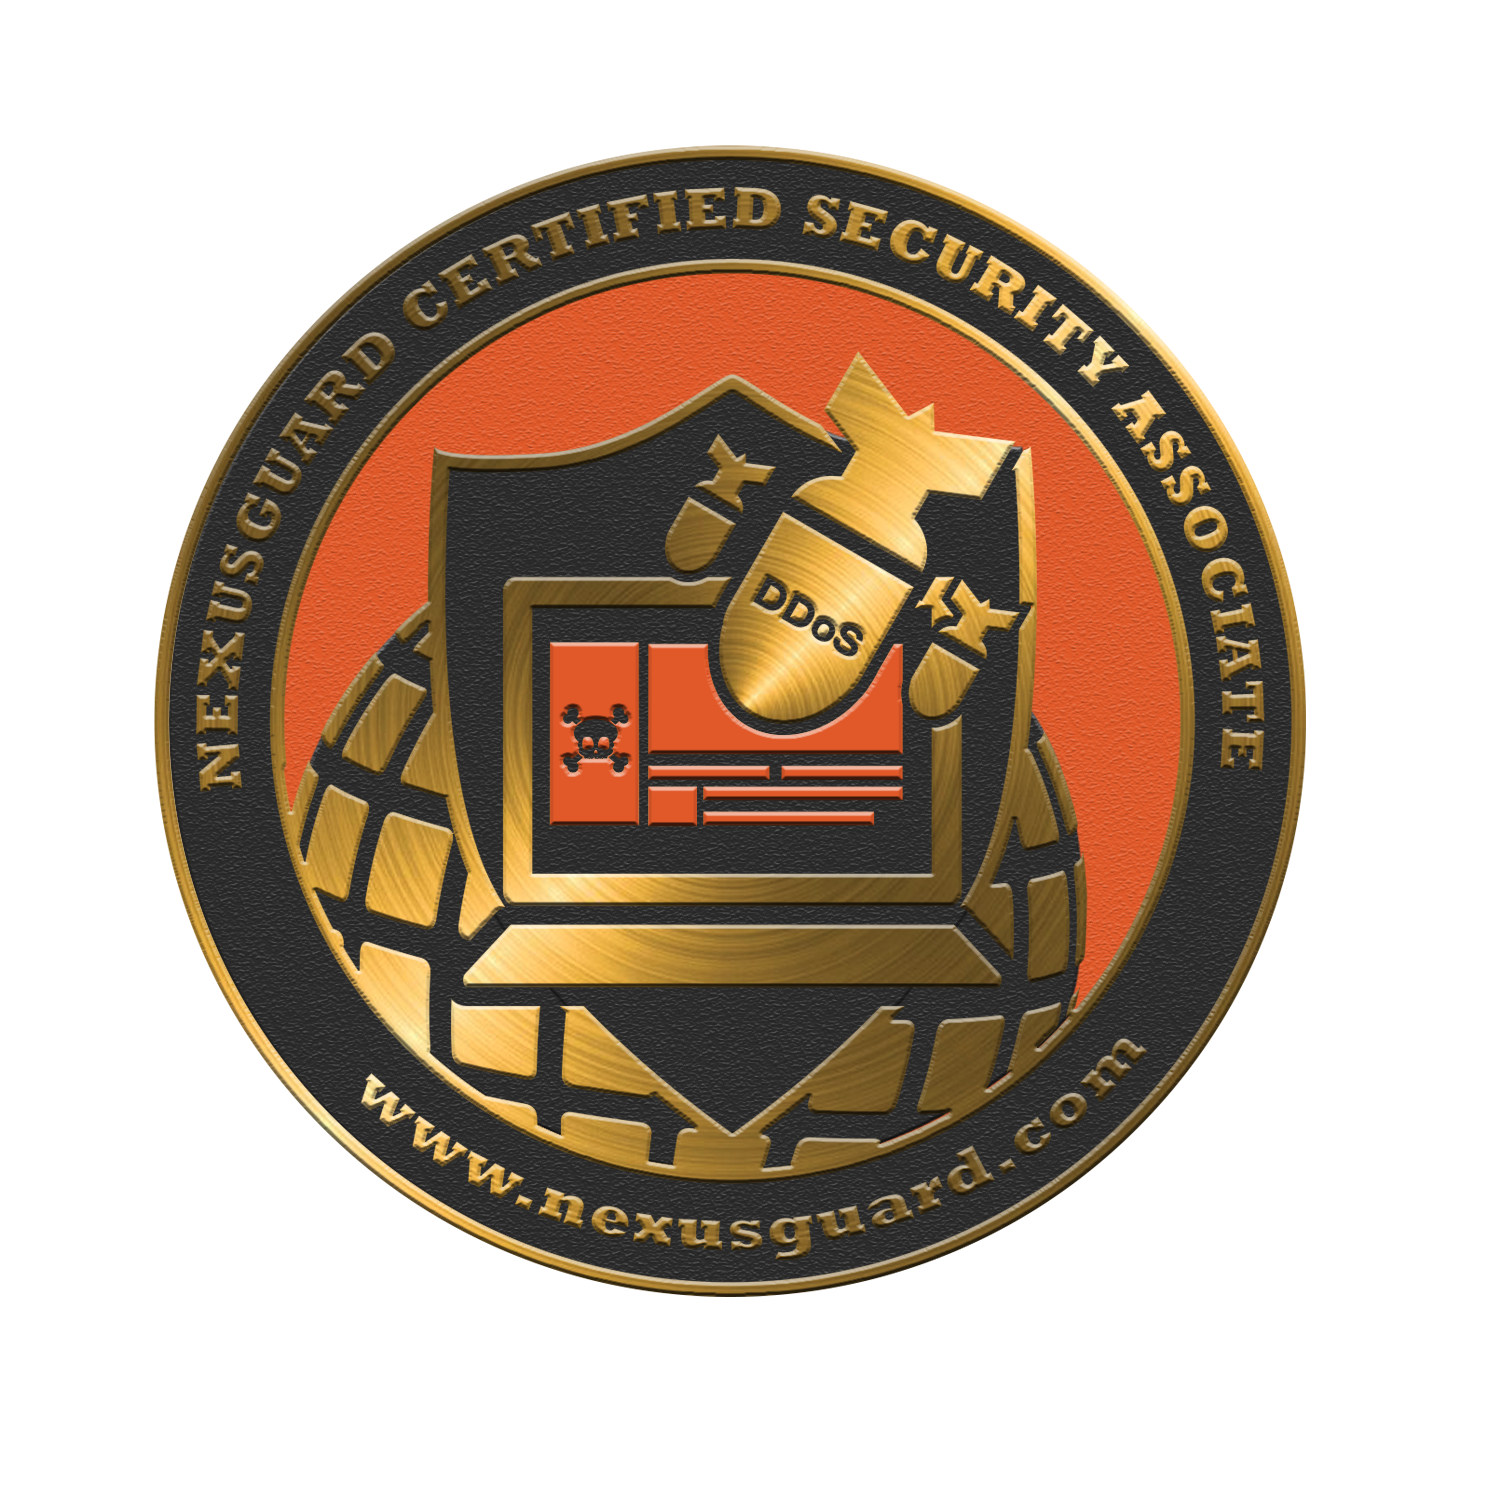 Nexusguard Certified Security Associate